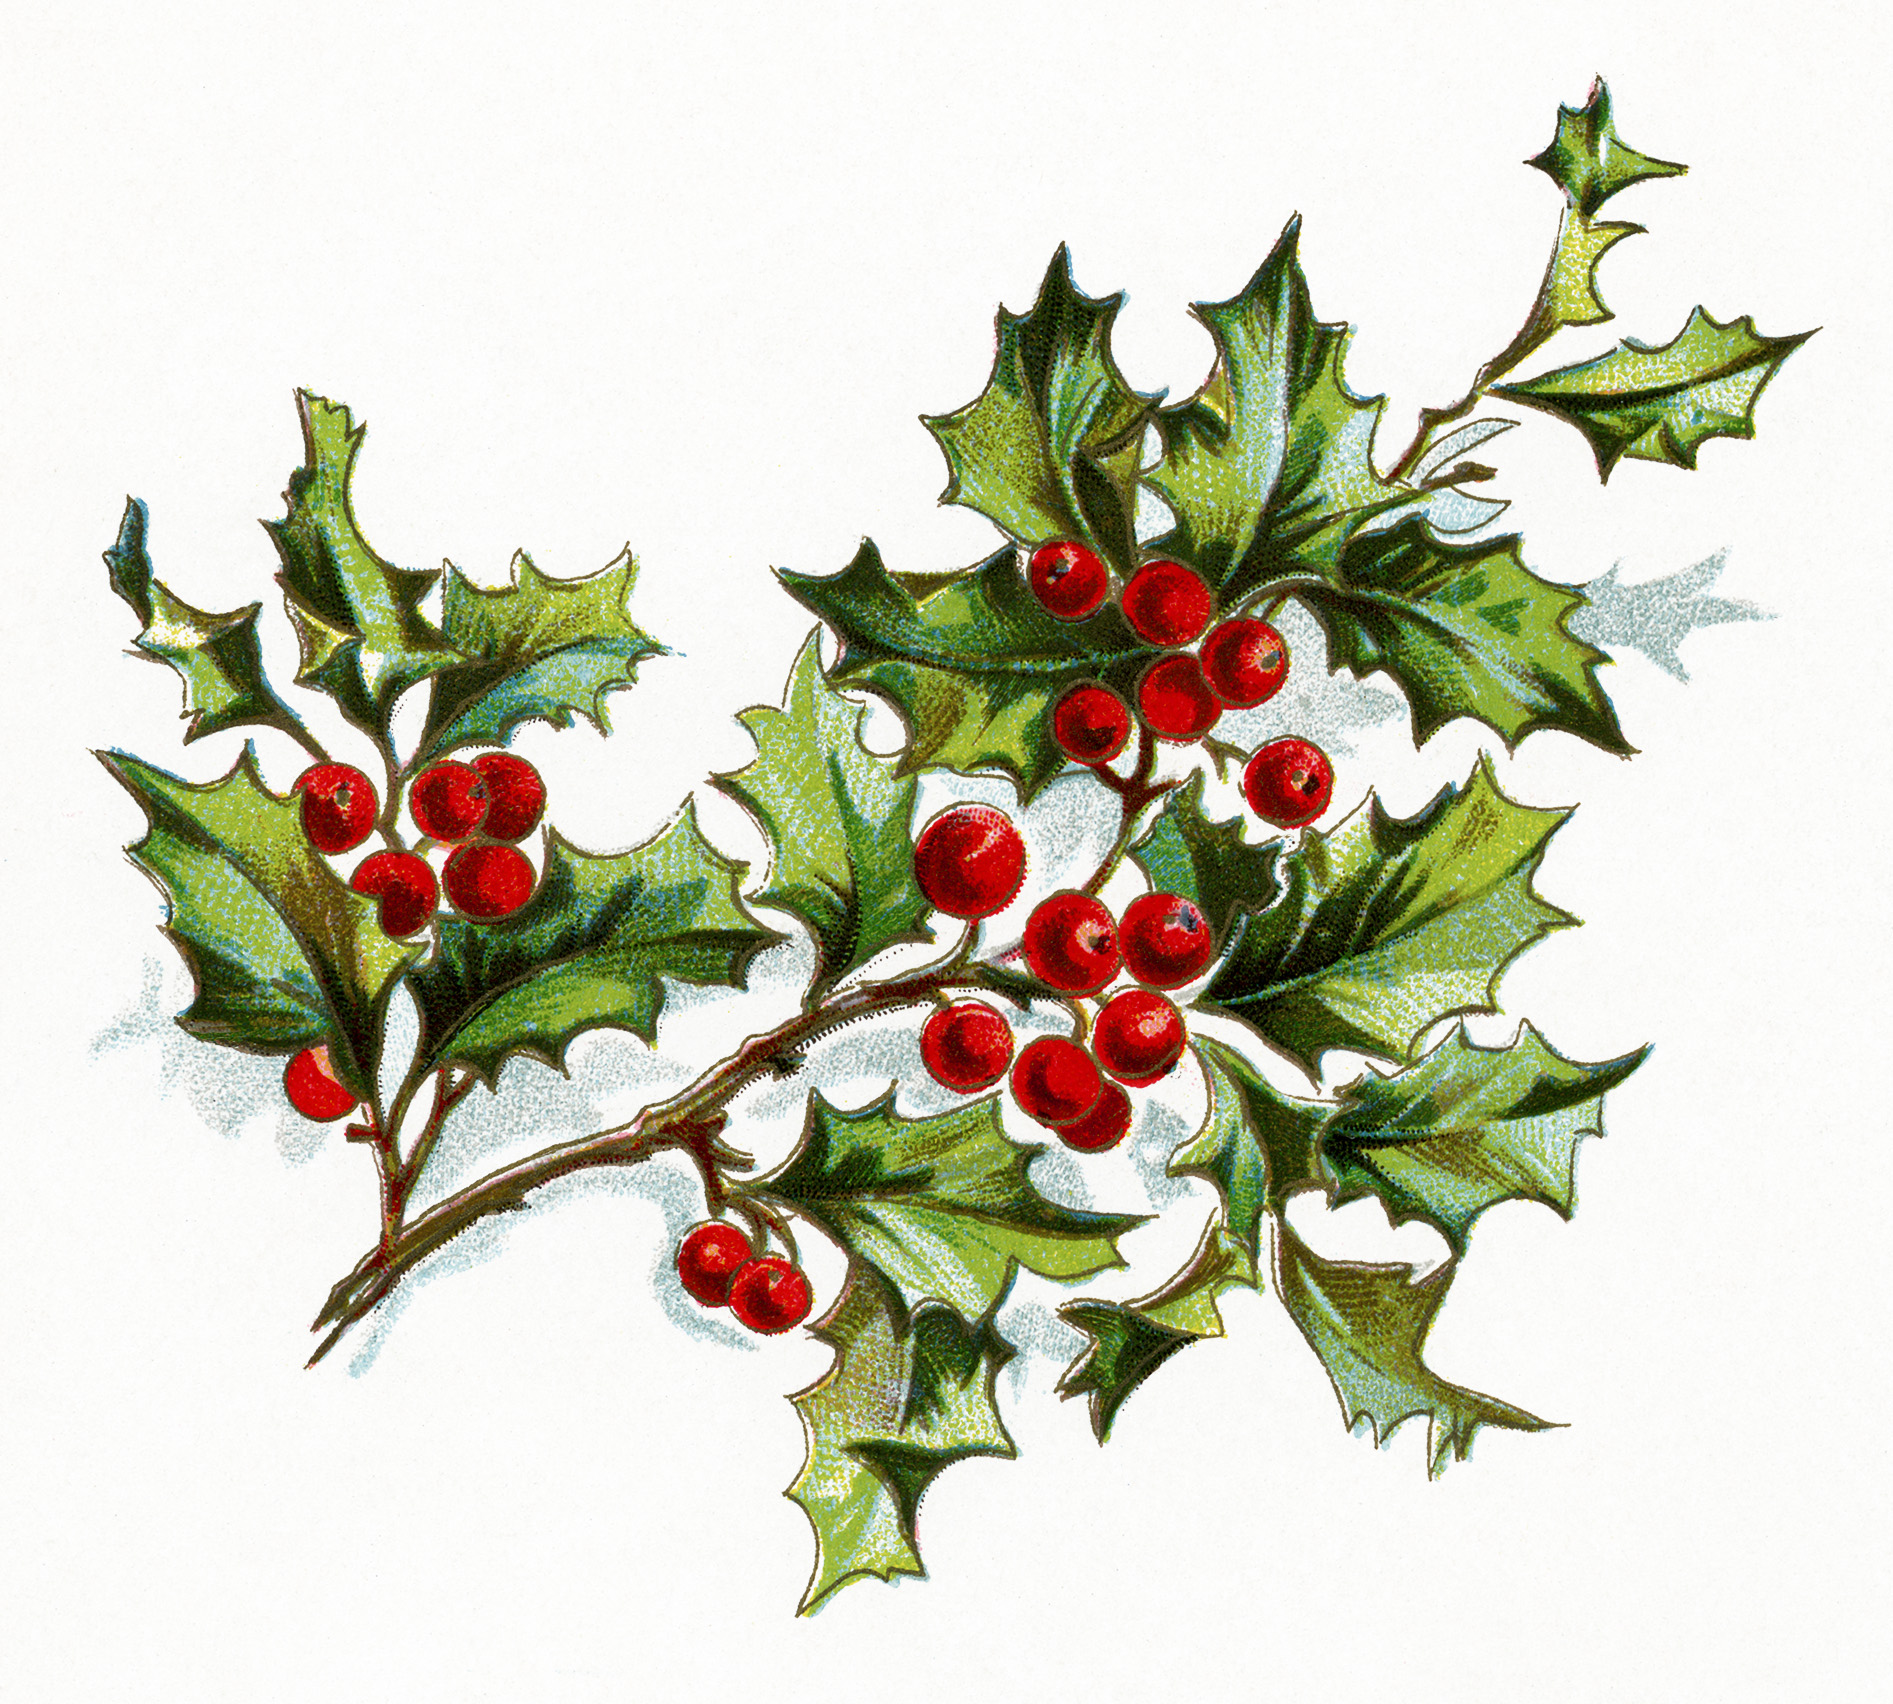 This Lovely Sprig Of Holly And Berries Is From A Book Of Poetry Titled